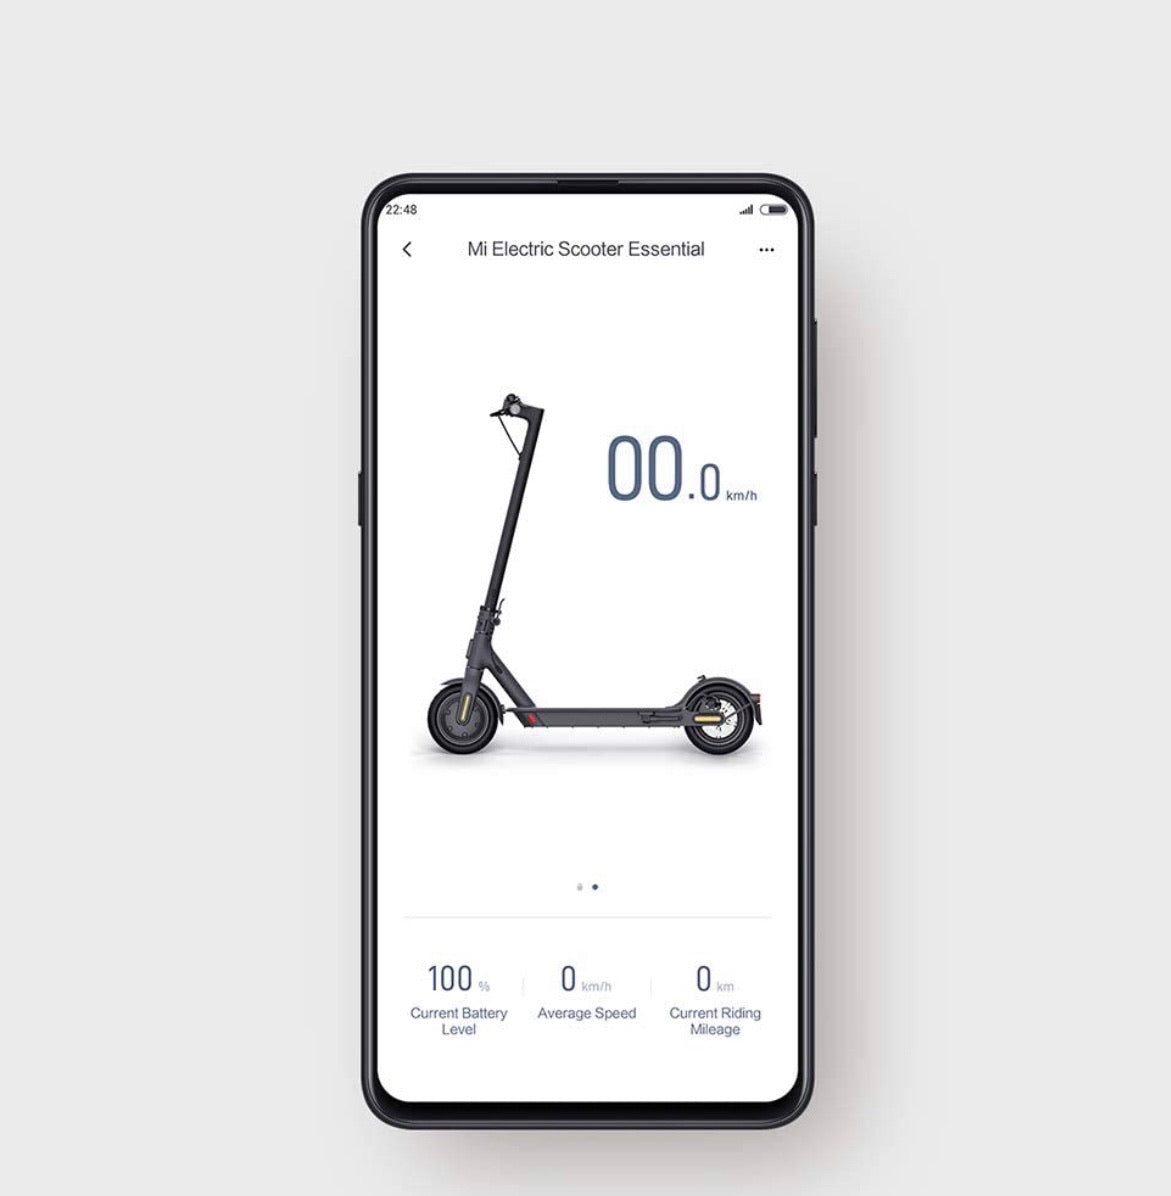 Xiaomi S1 Electric Scooter Smart Phone App